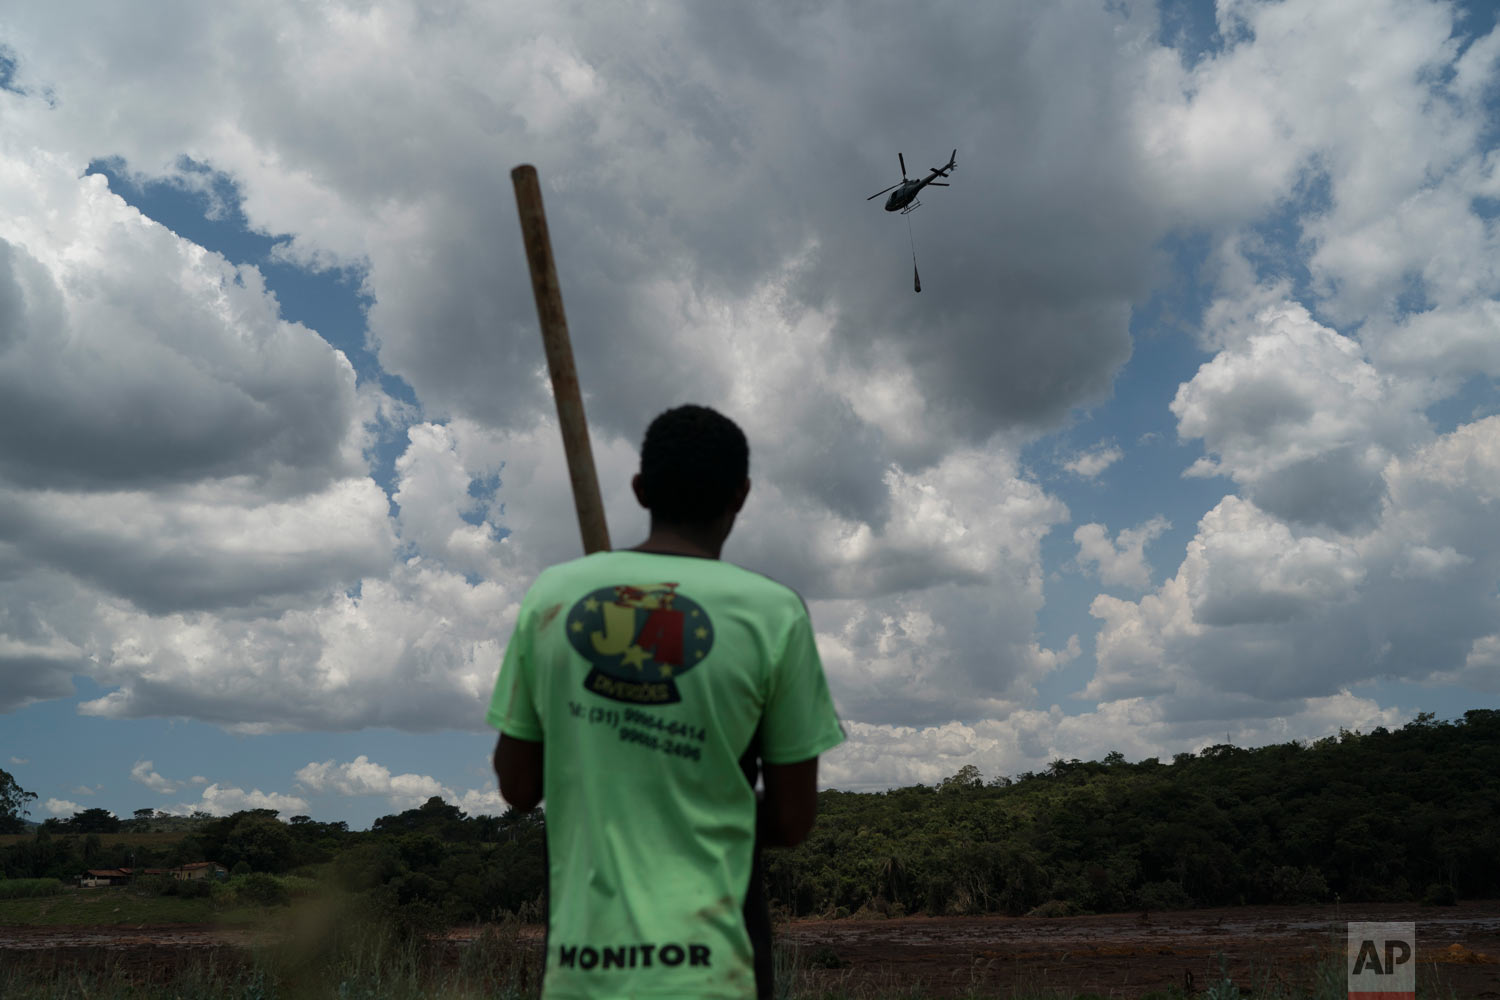 Fernando Nunes watches a helicopter carry a body away from the mud after a Vale dam collapse while his brother Peterson, a Vale employee, remains missing in Brumadinho, Brazil, Jan. 30, 2019, two days before his body was found. (AP Photo/Leo Correa)